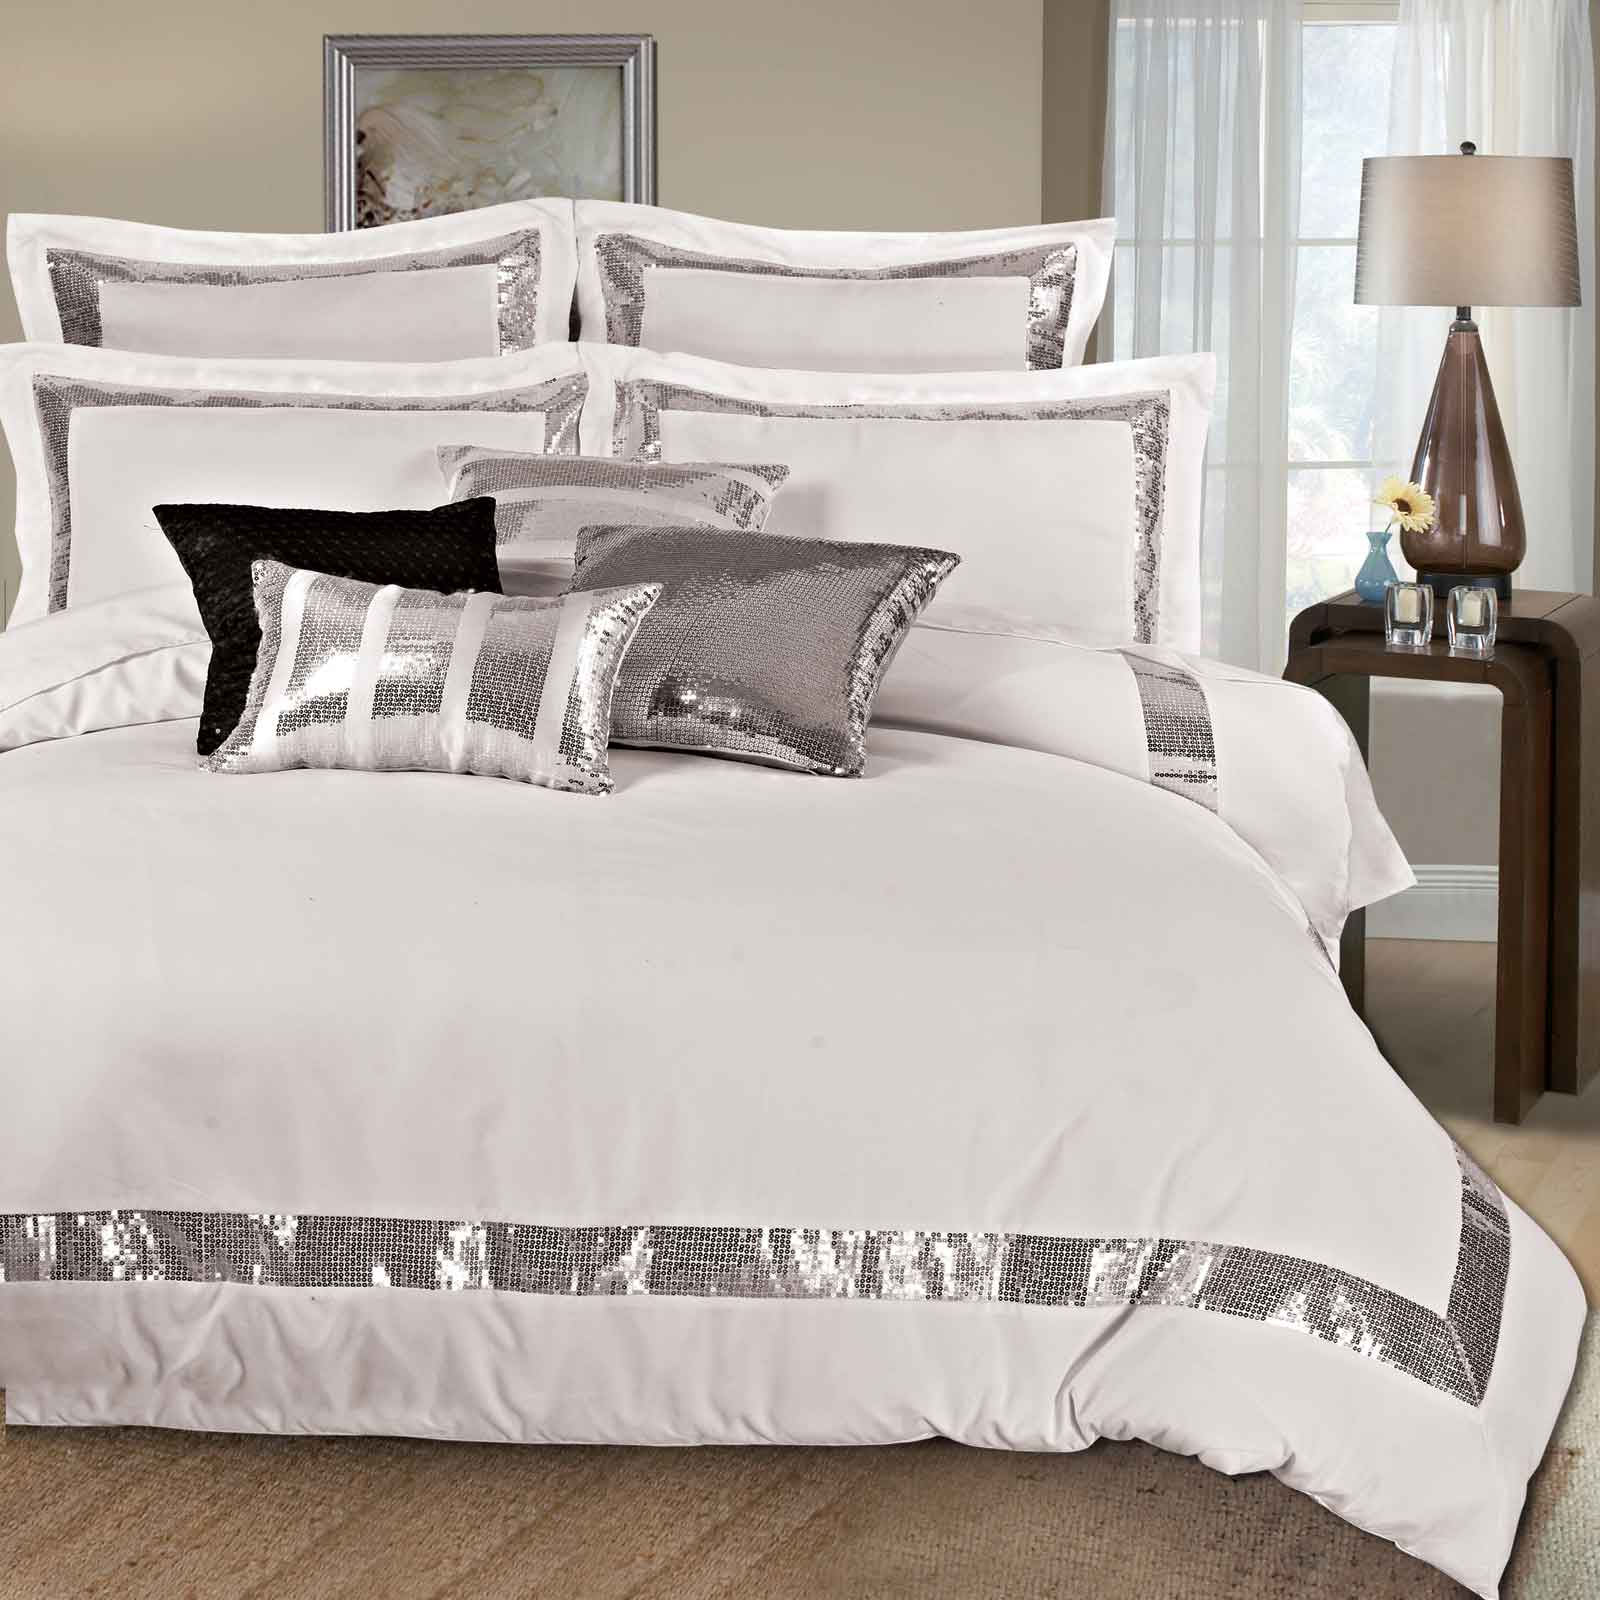 Luxton-Linen-King-Size-Duvet-Quilt-Cover-Set-3pcs-Bedding-Set-Bed-Linen-S00013K